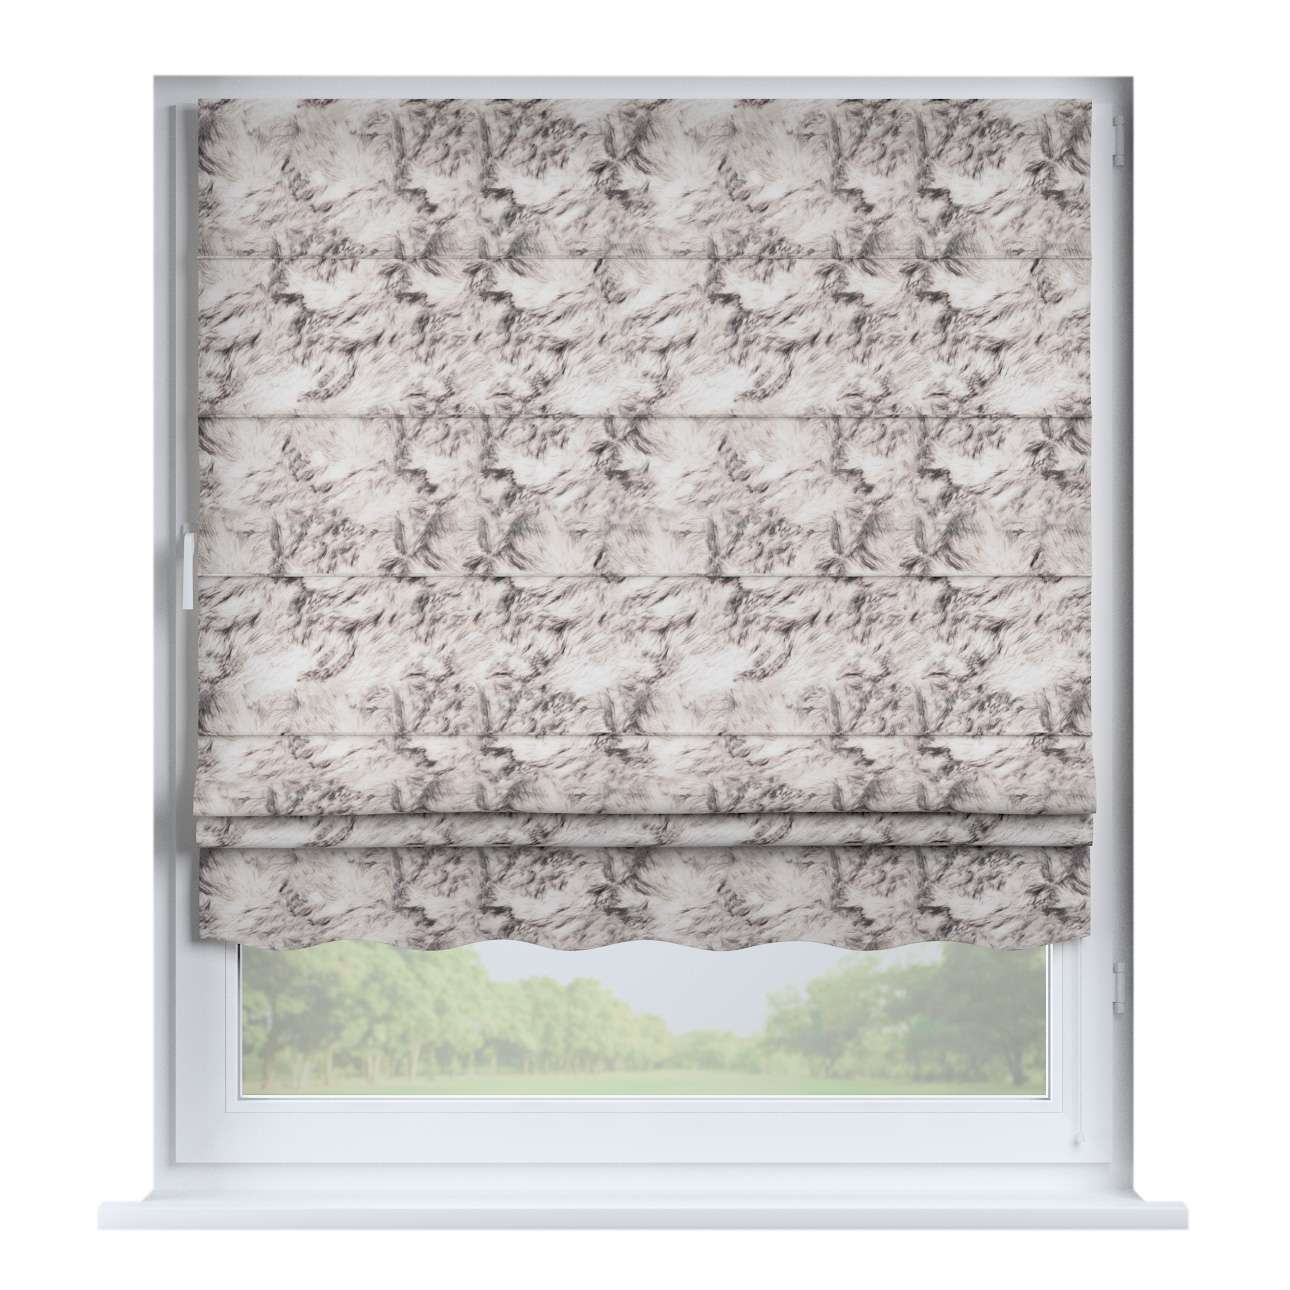 Florence roman blind  80 x 170 cm (31.5 x 67 inch) in collection Freestyle, fabric: 140-82